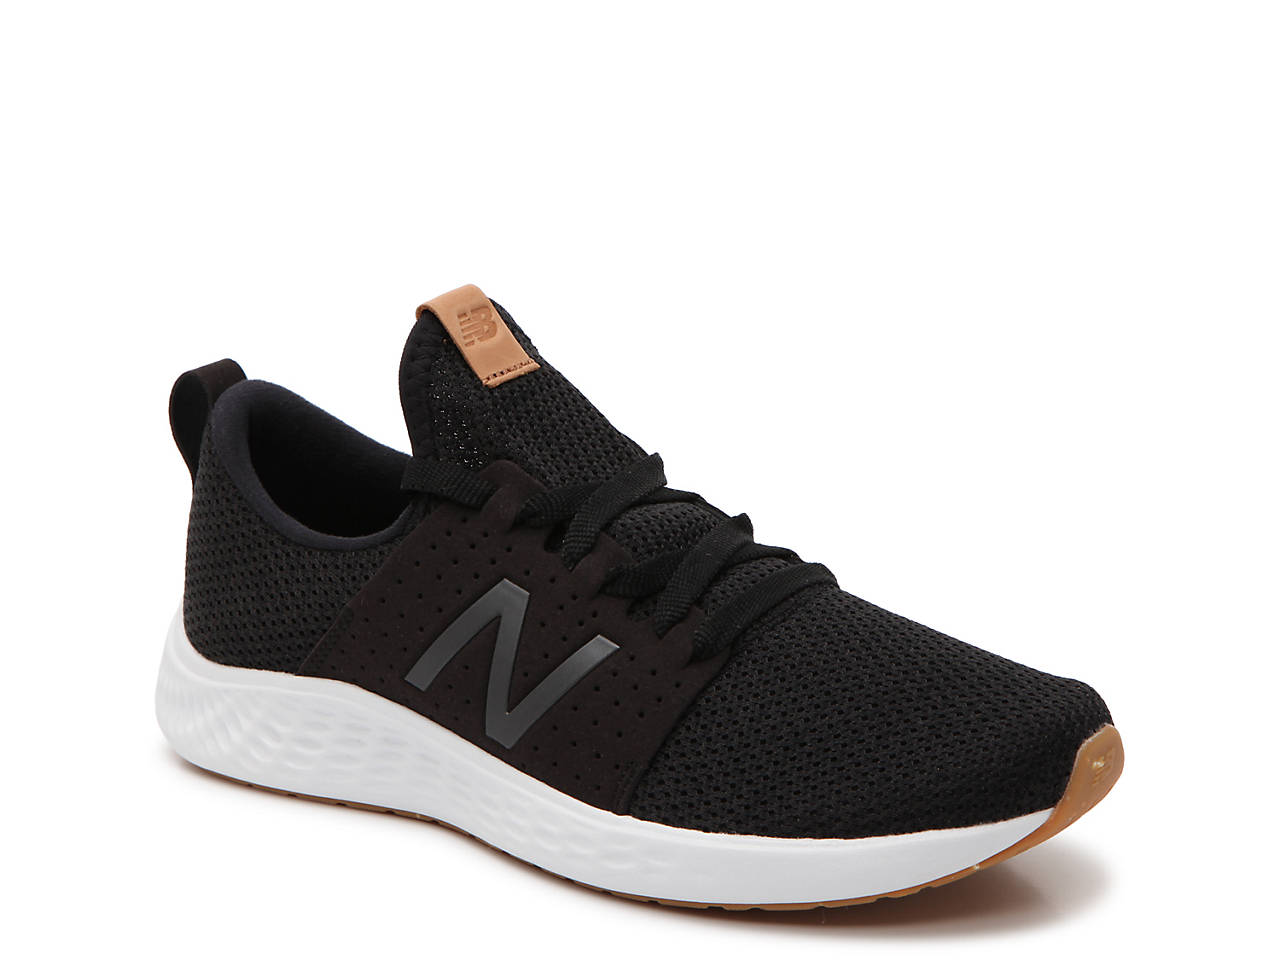 73f12bc282a New Balance Fresh Foam Sport Lightweight Running Shoe - Women s ...